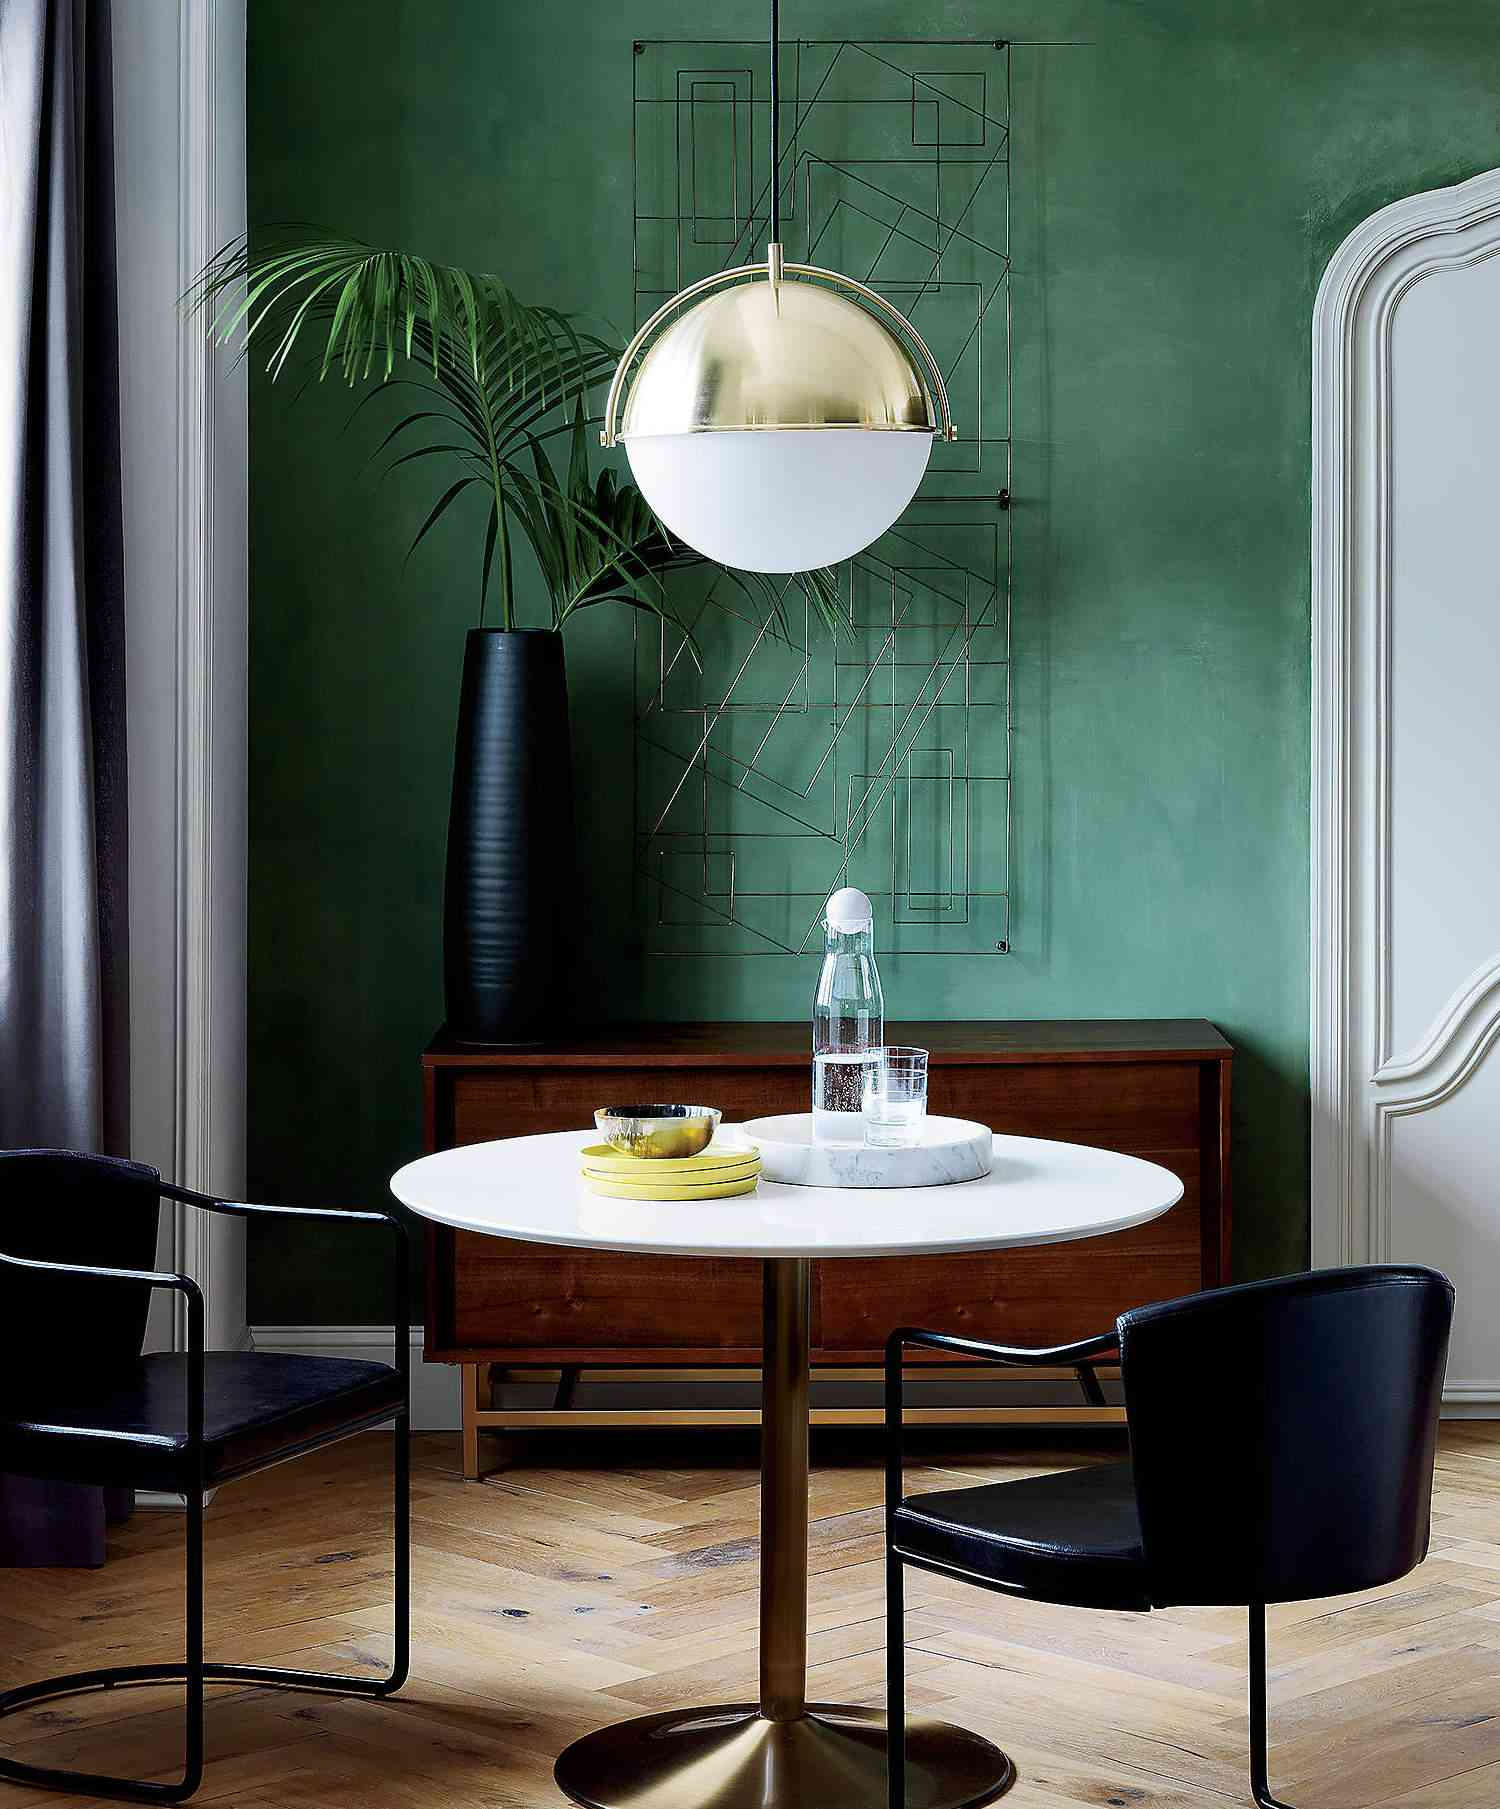 A pendant light hanging over a dining table